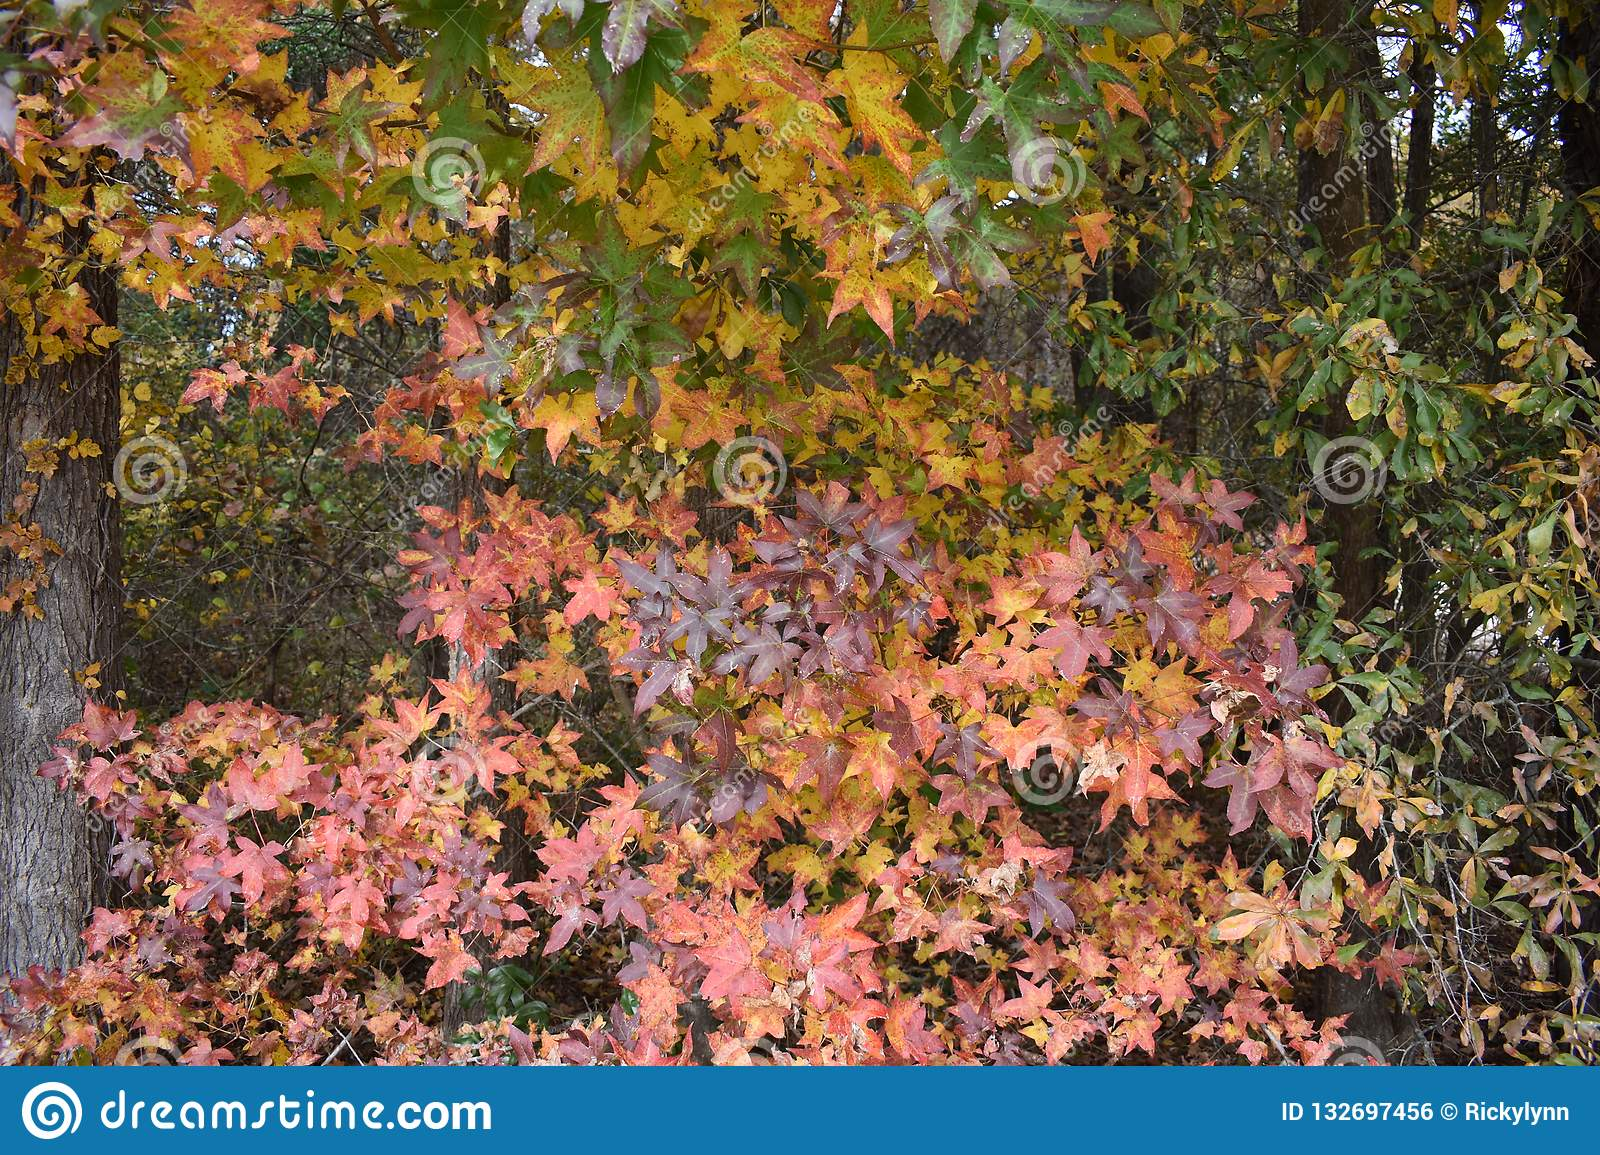 Fall Colors Of A Sweet Gum Tree In Gilmer Texas Nov 25 2018